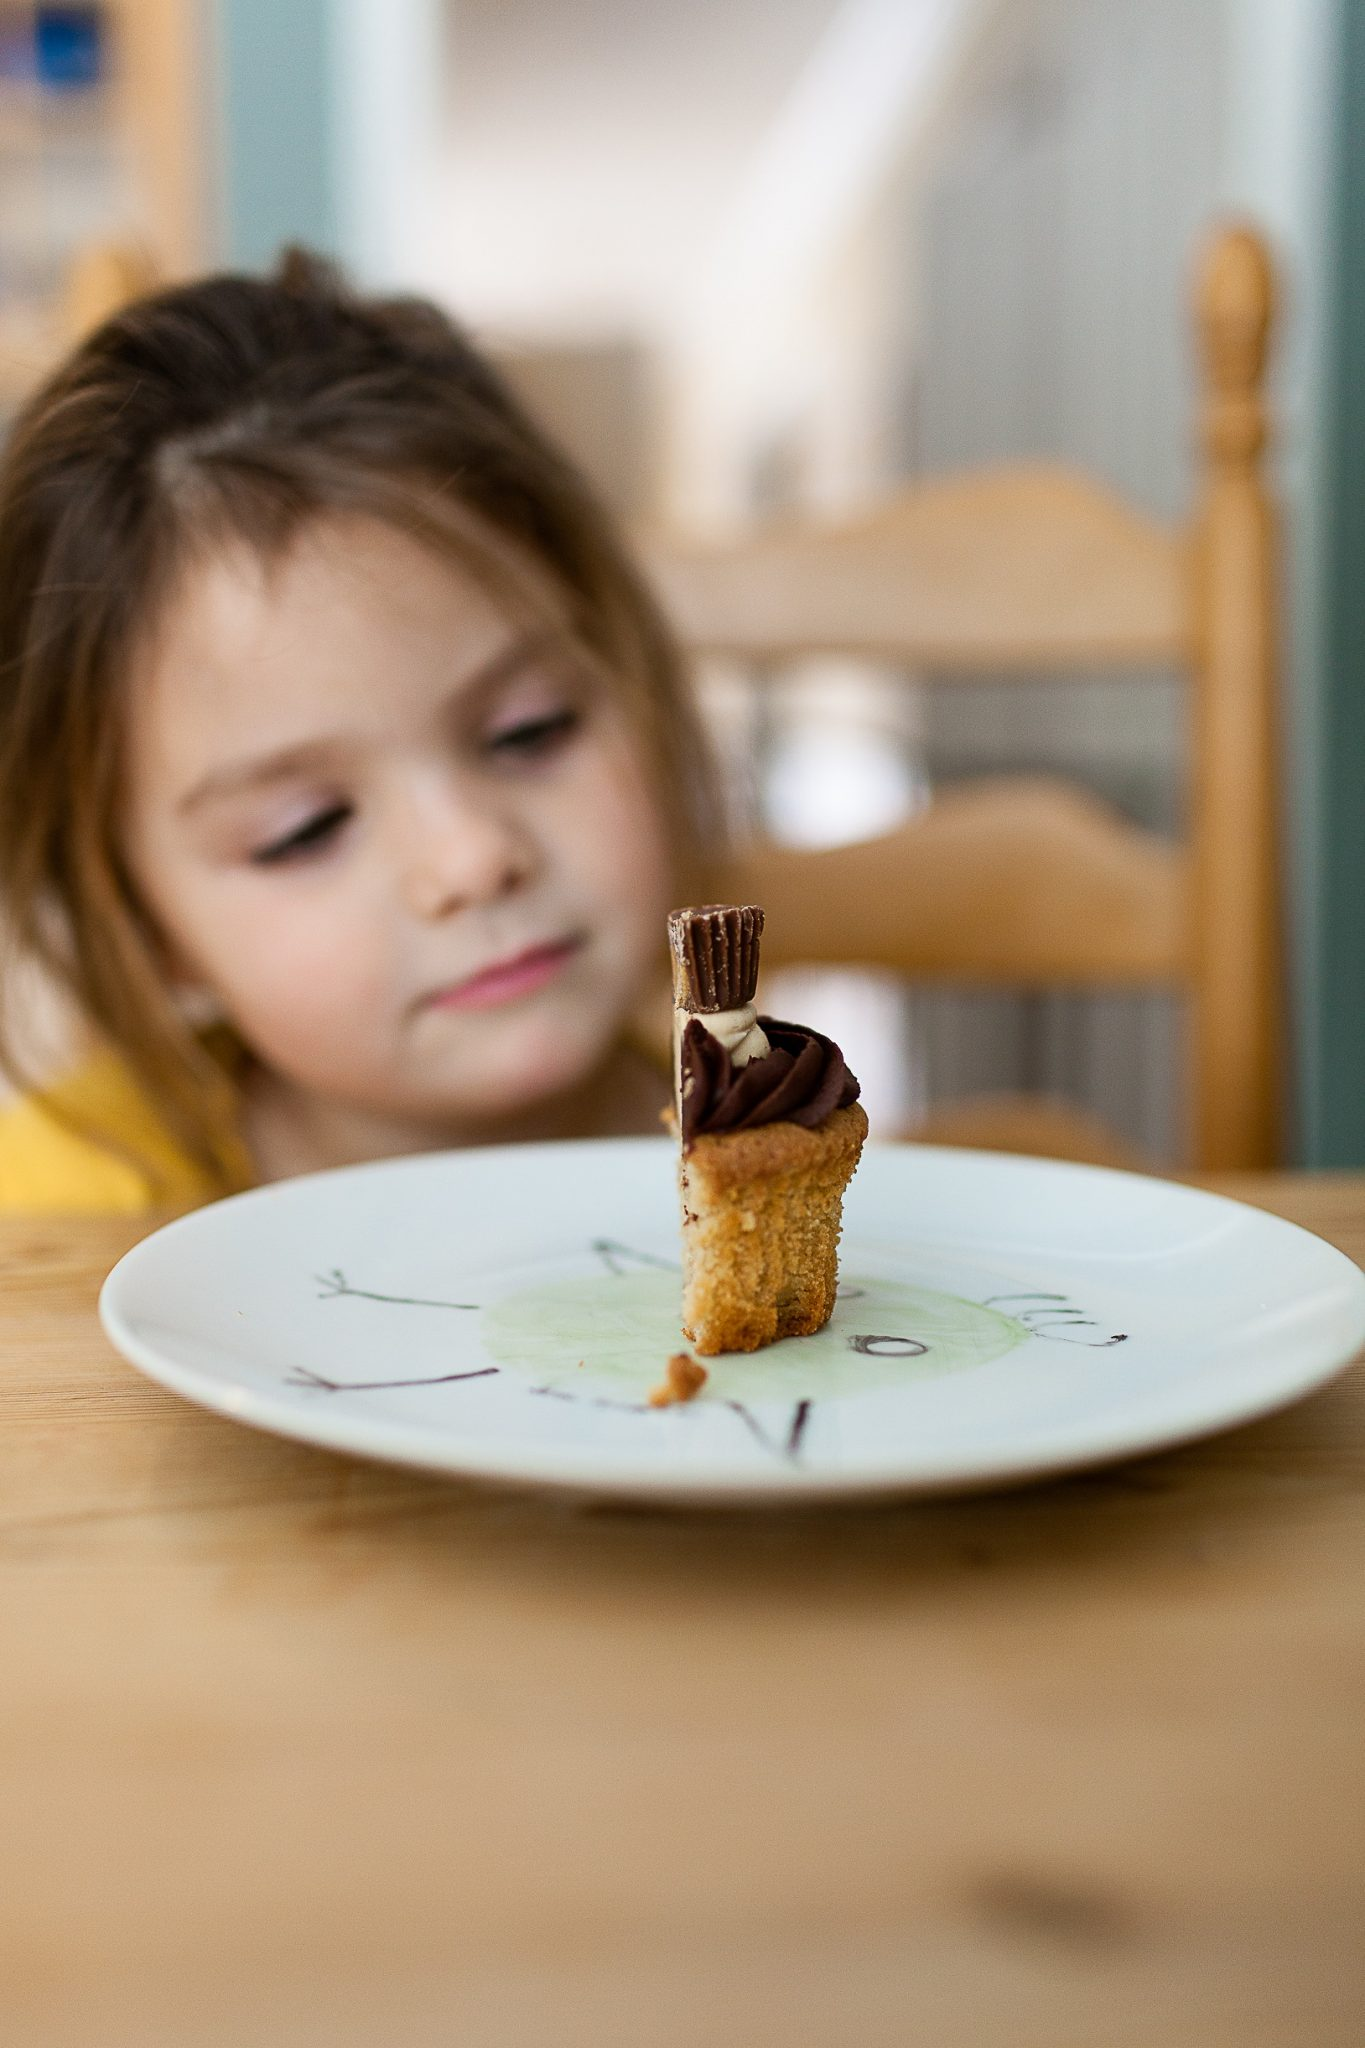 Are You Giving Your Child an Eating Disorder?